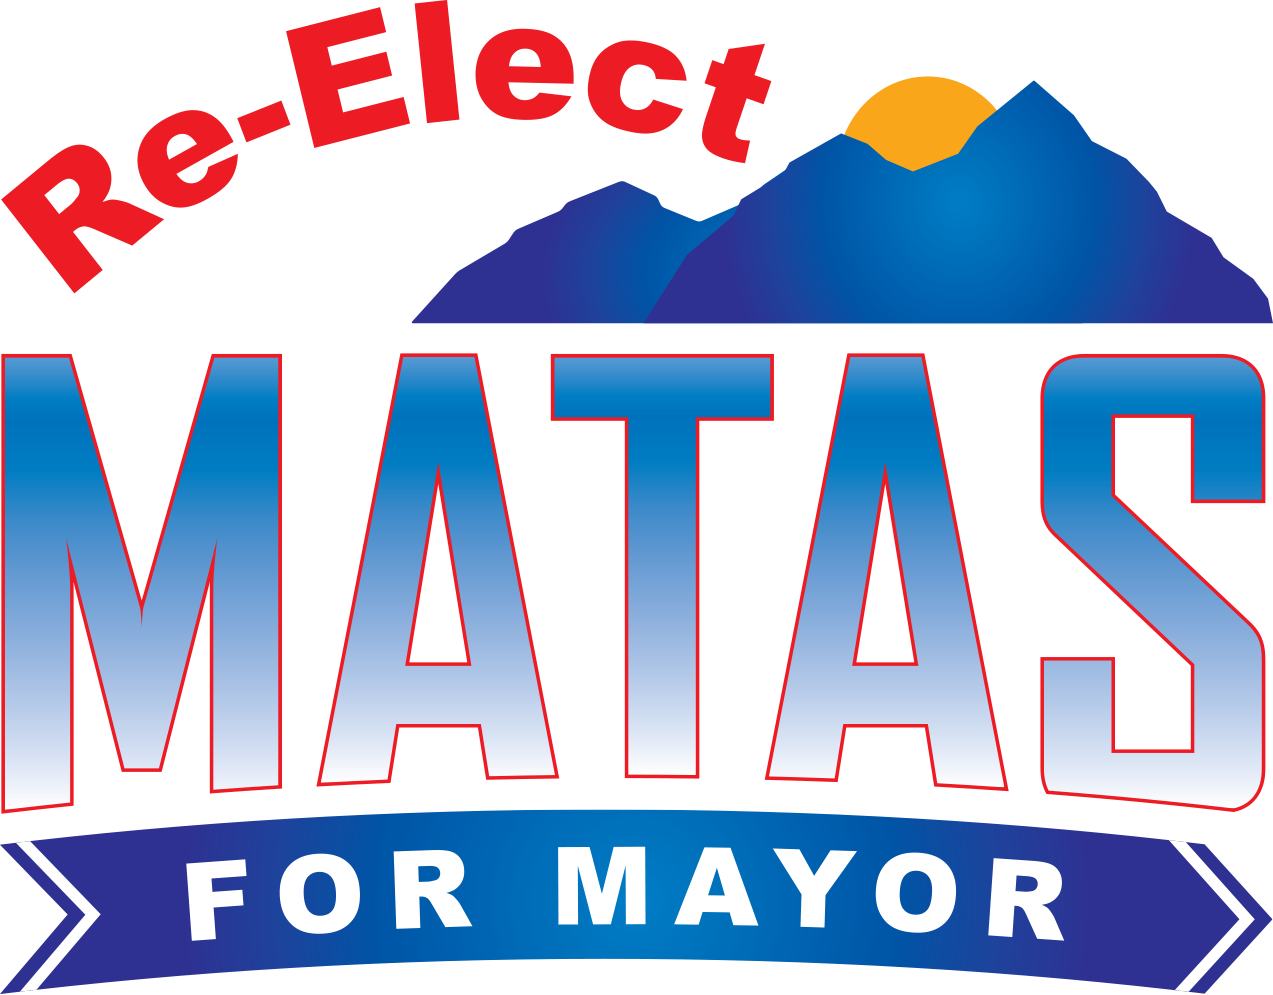 Re-elect Mayor Scott Matas